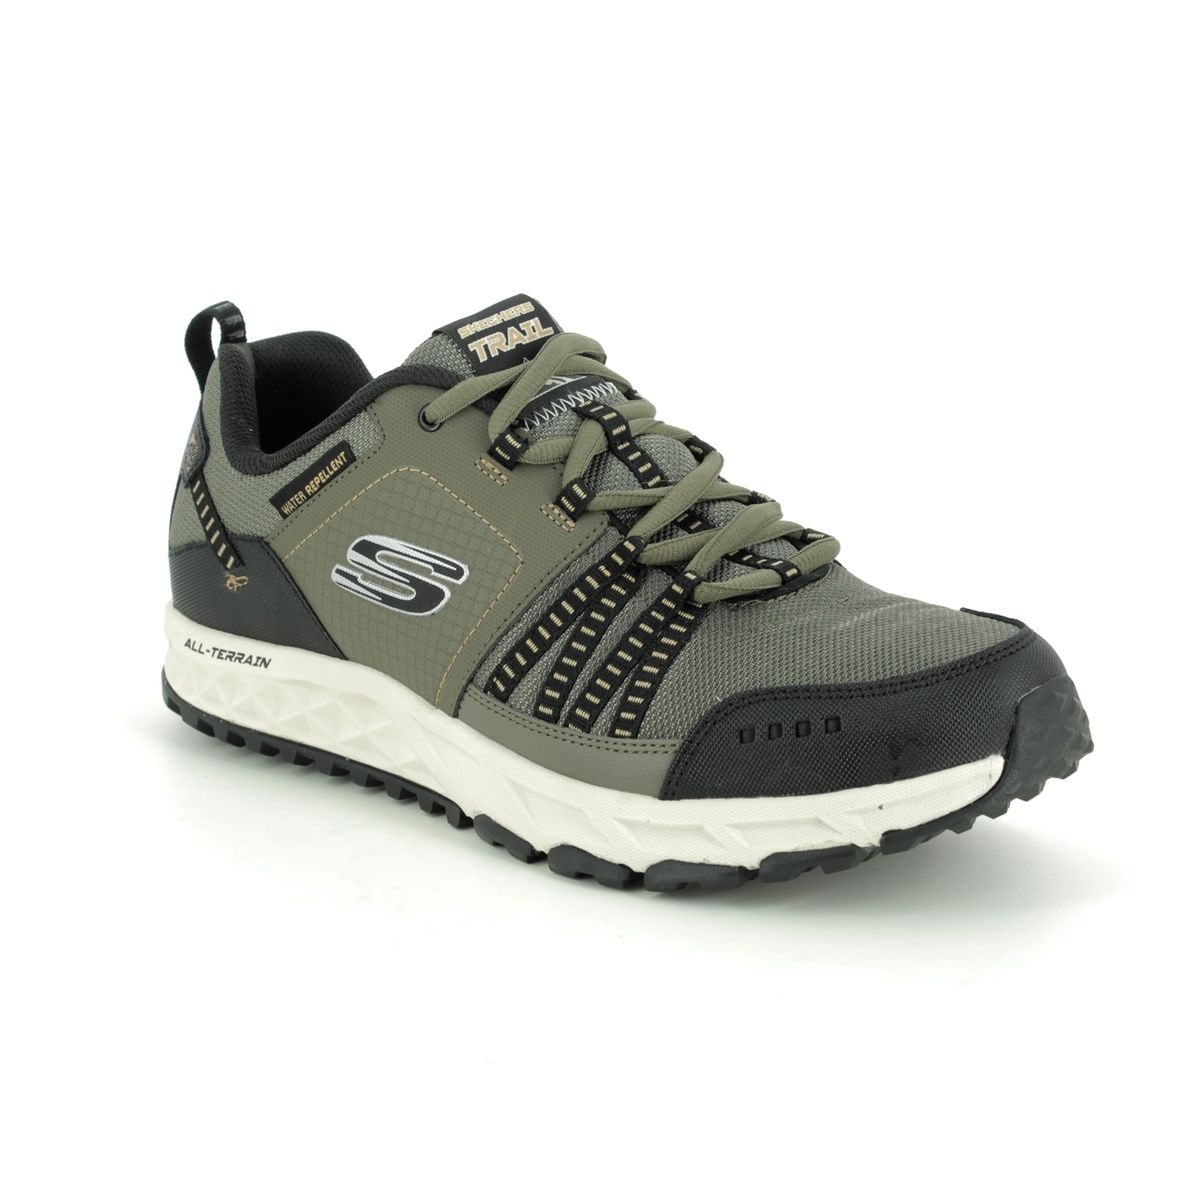 Pavimentación Remontarse darse cuenta  Dla mężczyzn Skechers Escape Plan Shoes Mens Memory Foam Hiking ...